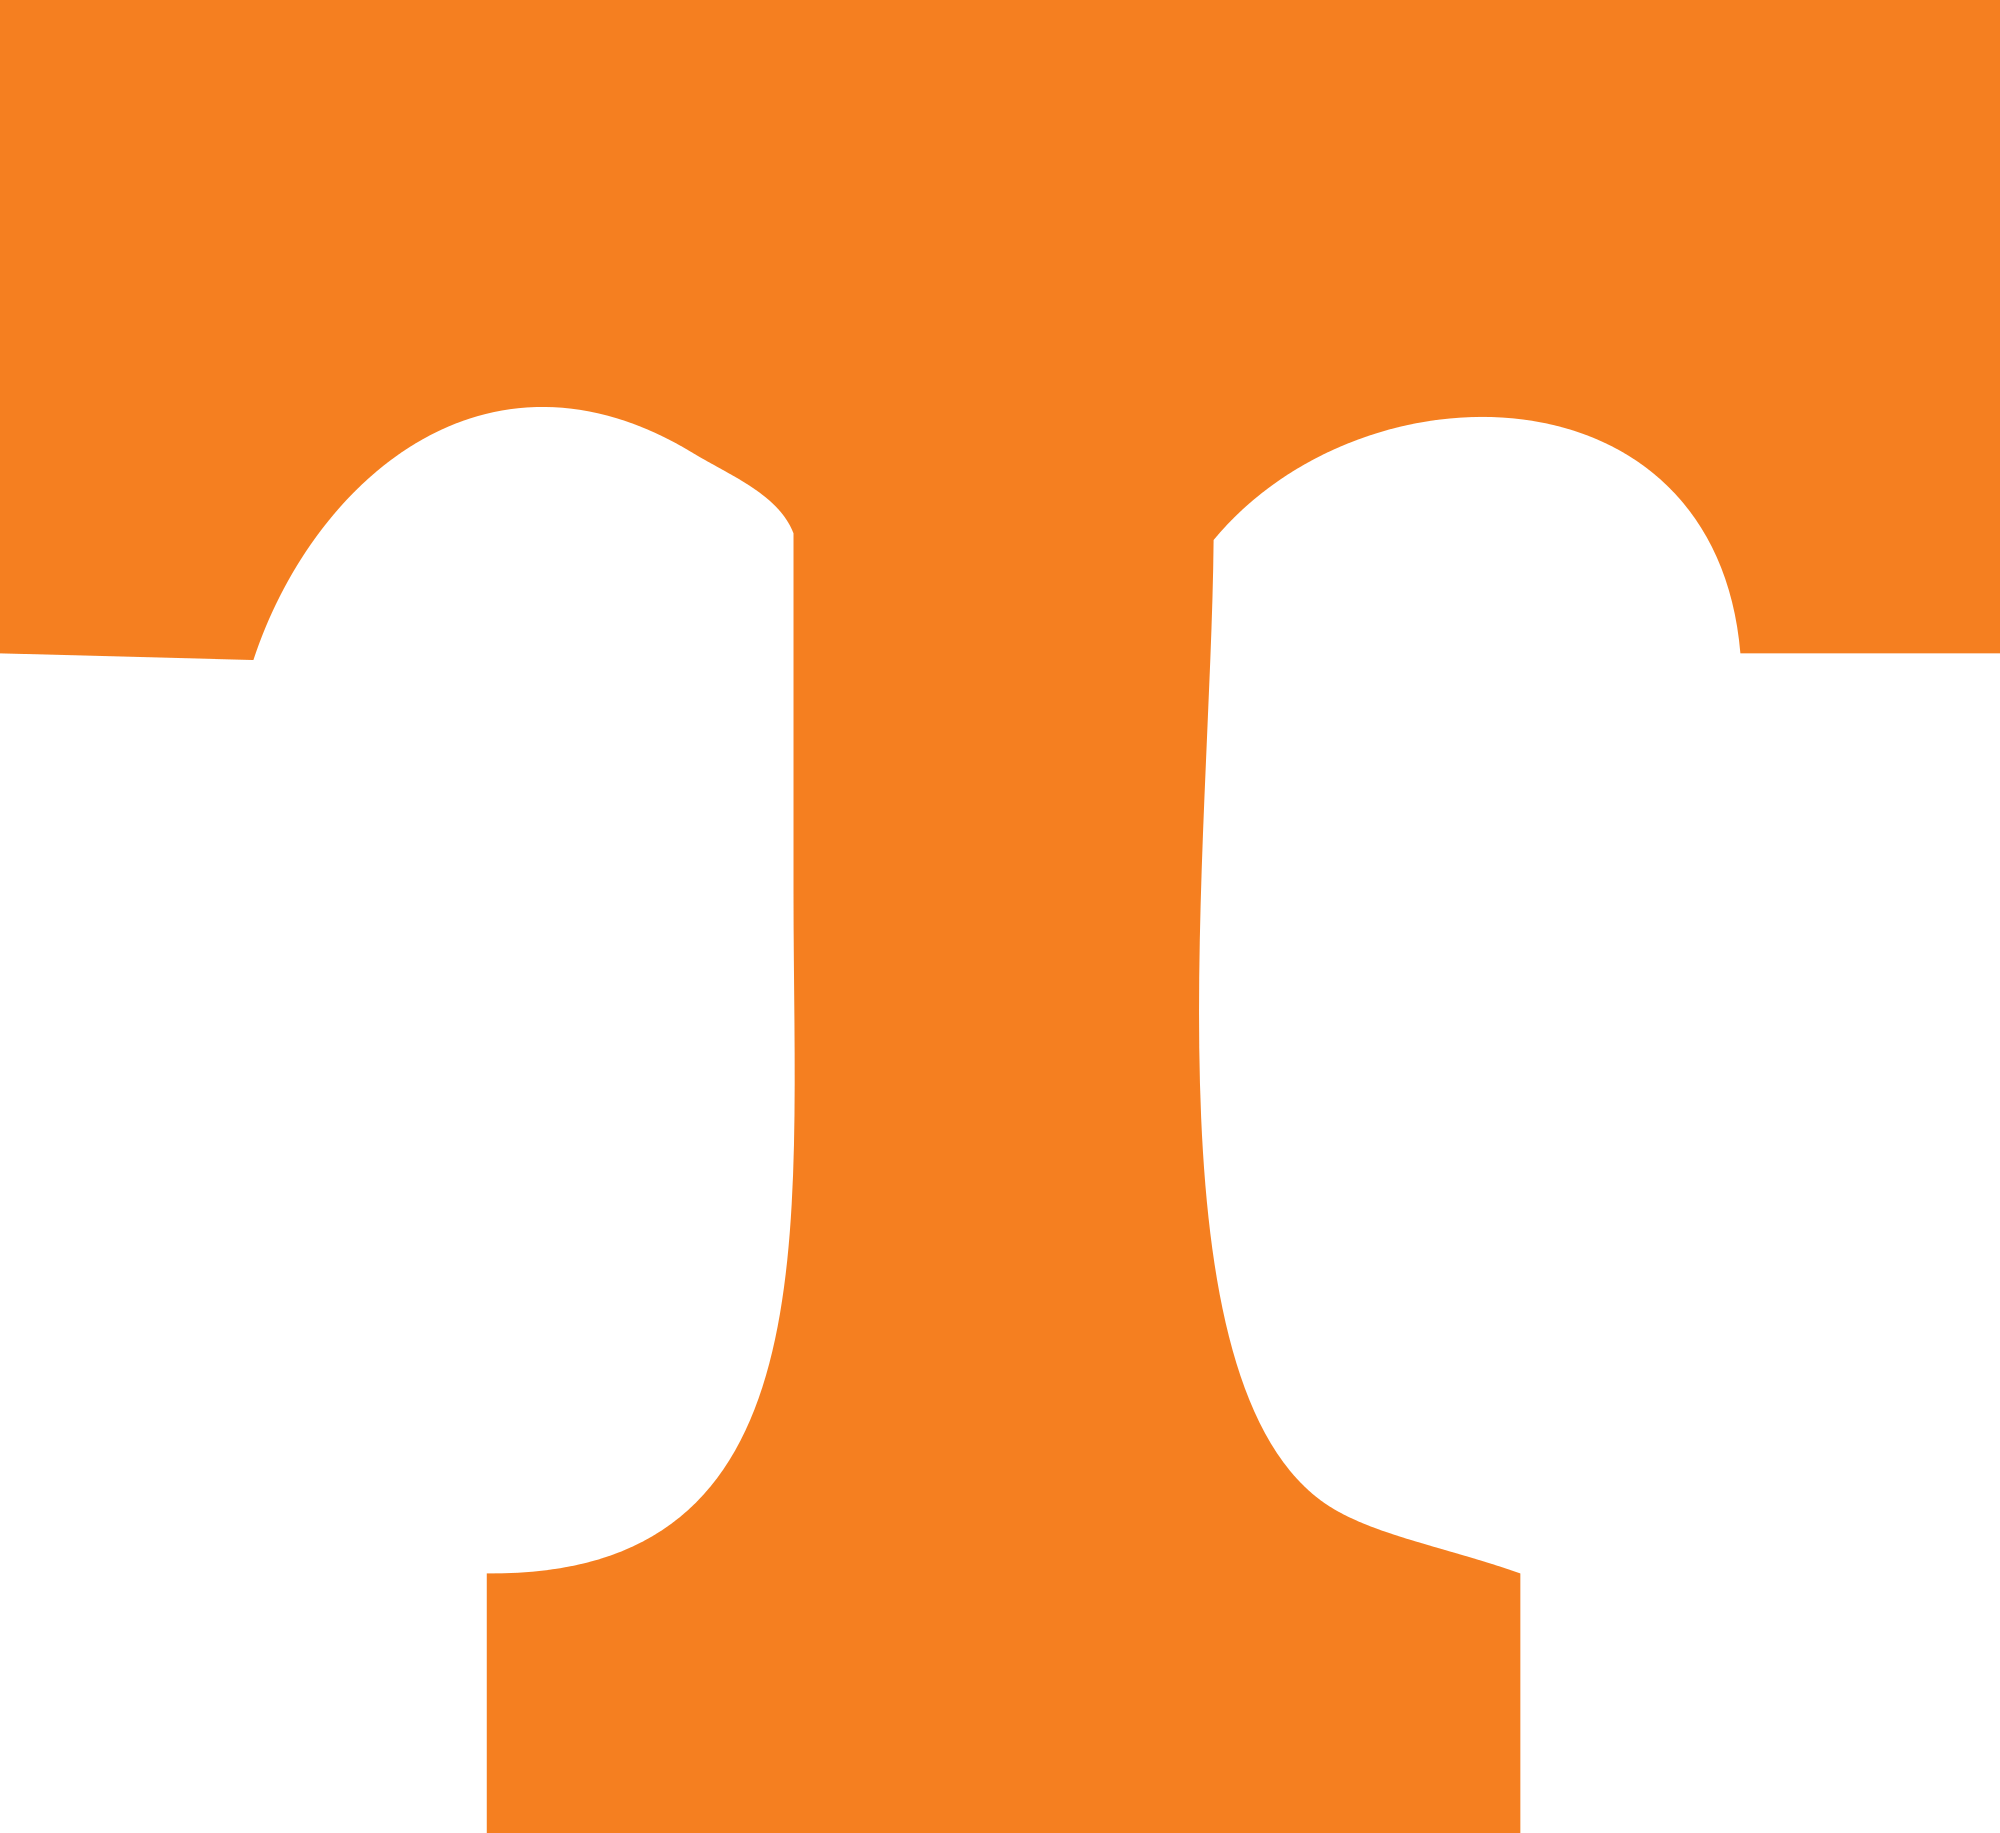 Power t png. Tennessee football logos